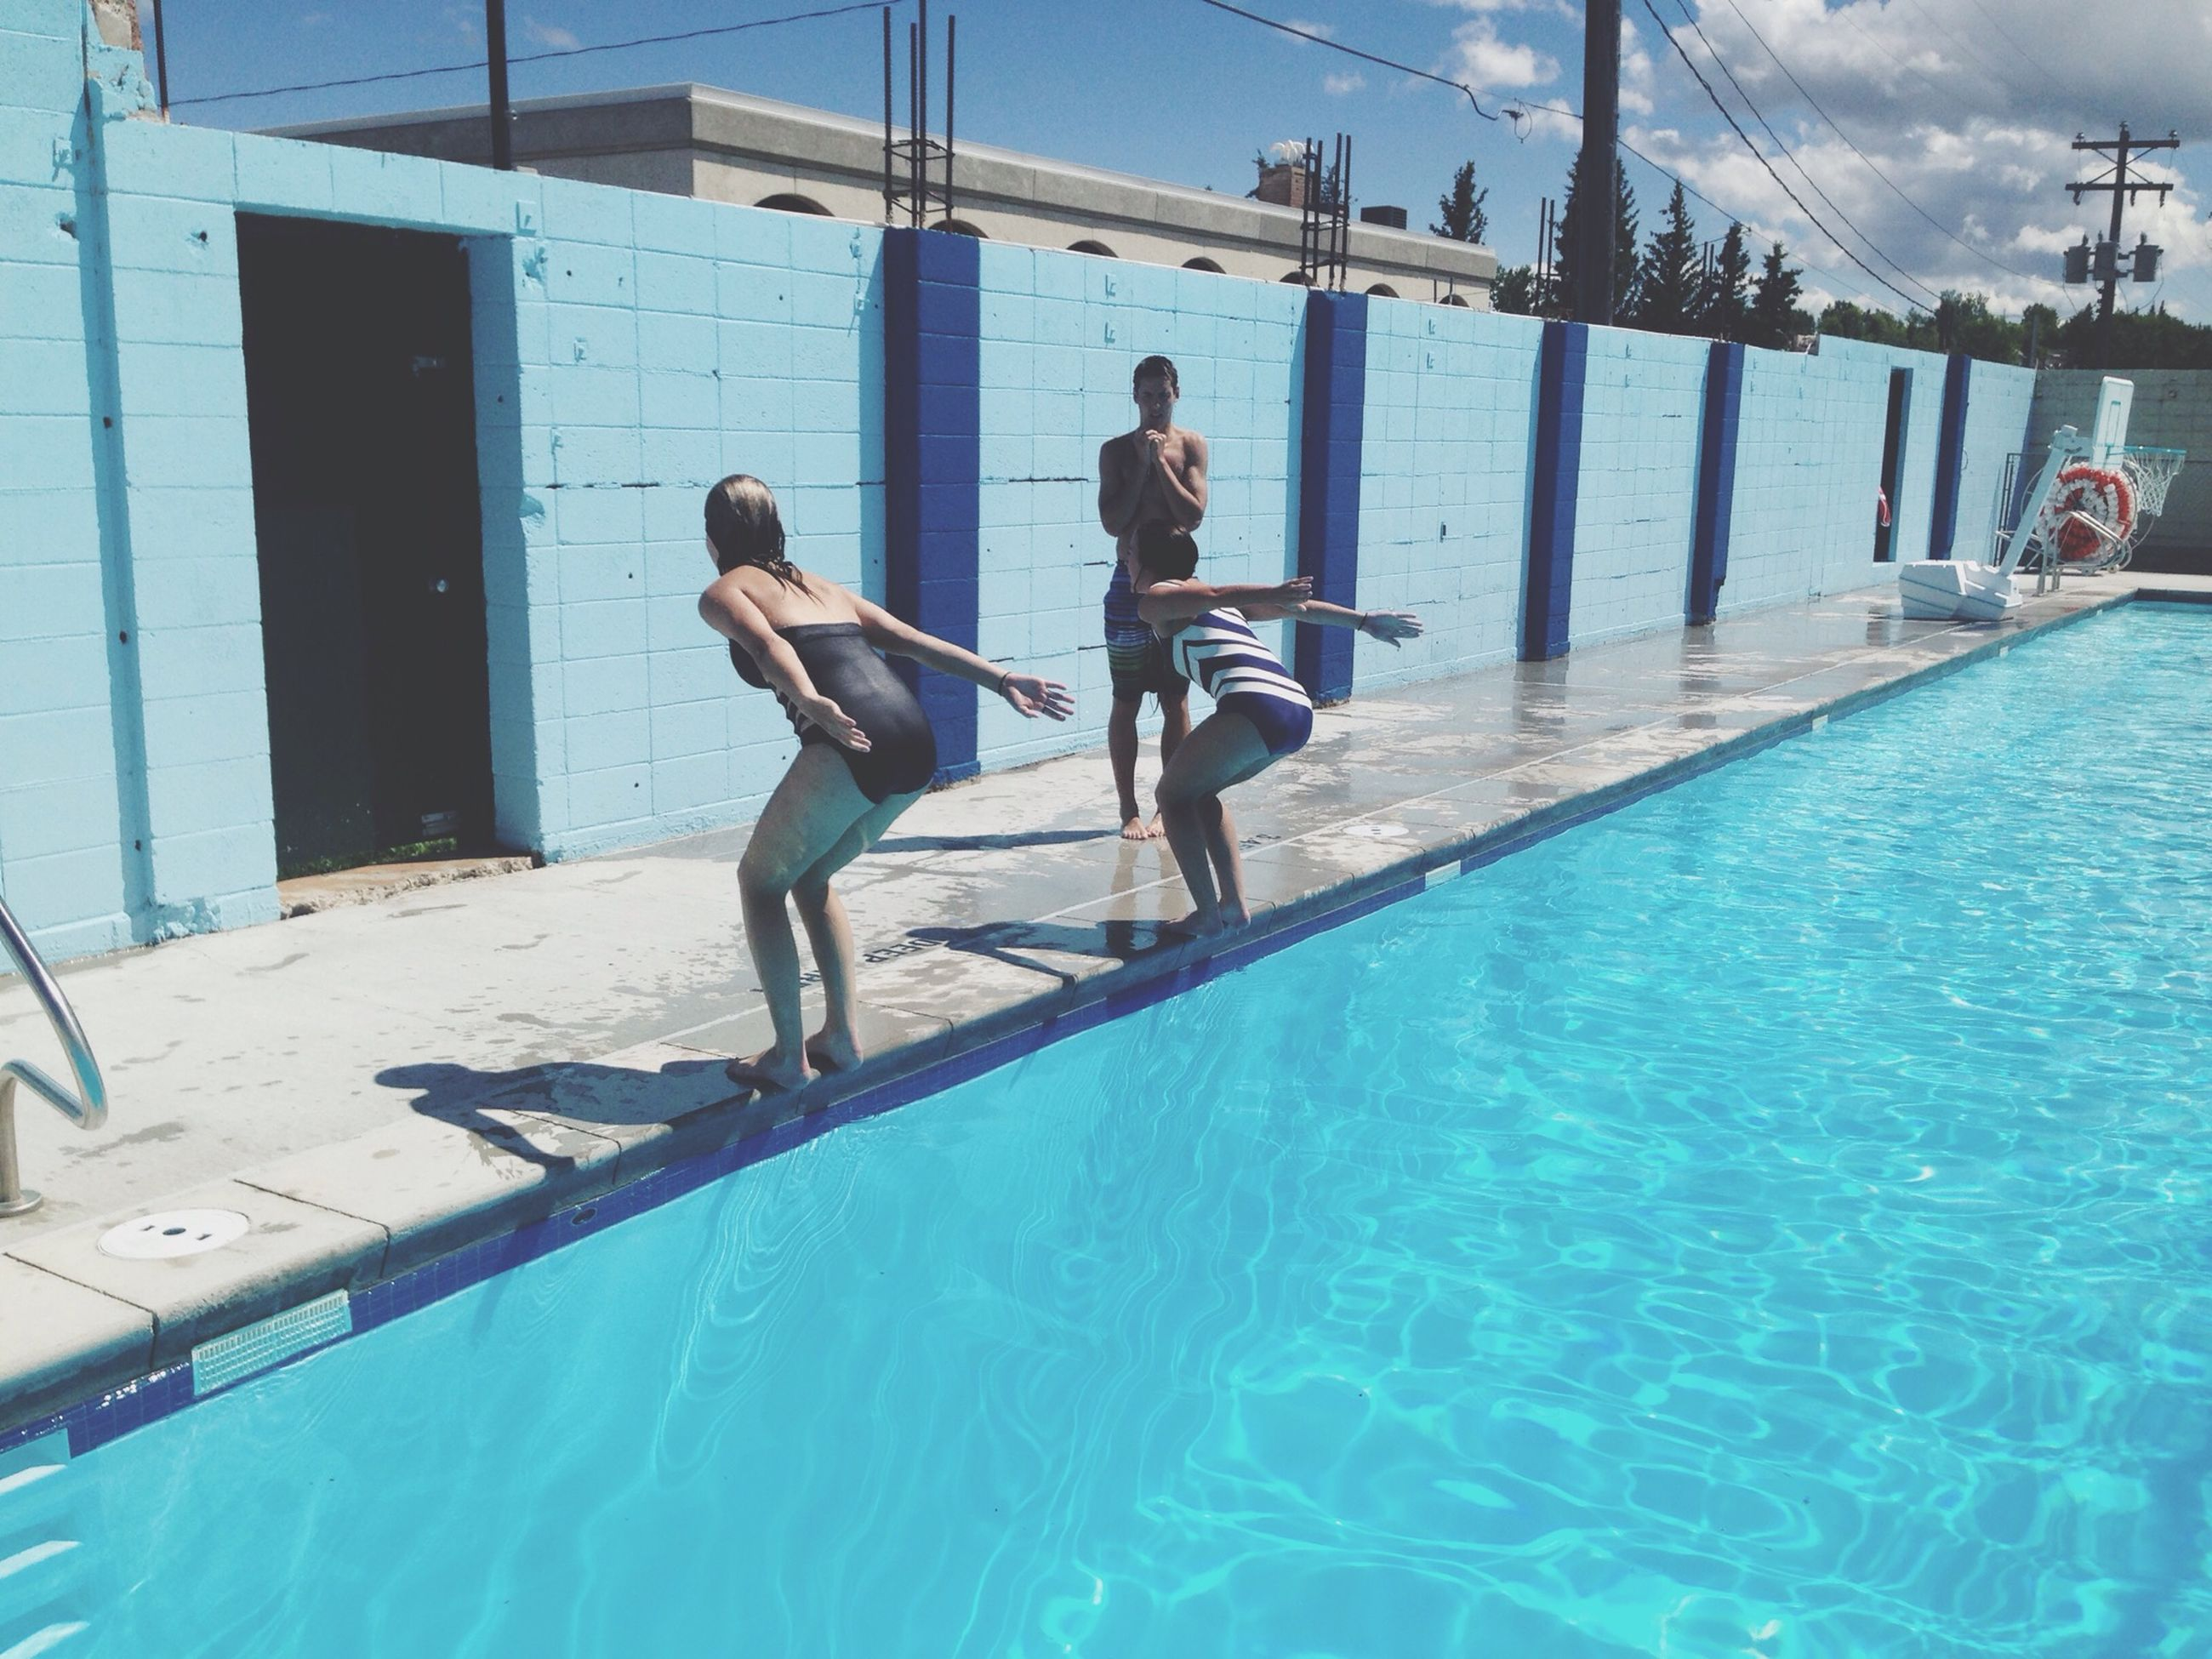 lifestyles, water, leisure activity, full length, men, blue, built structure, sea, boys, togetherness, architecture, waterfront, enjoyment, person, swimming pool, day, fun